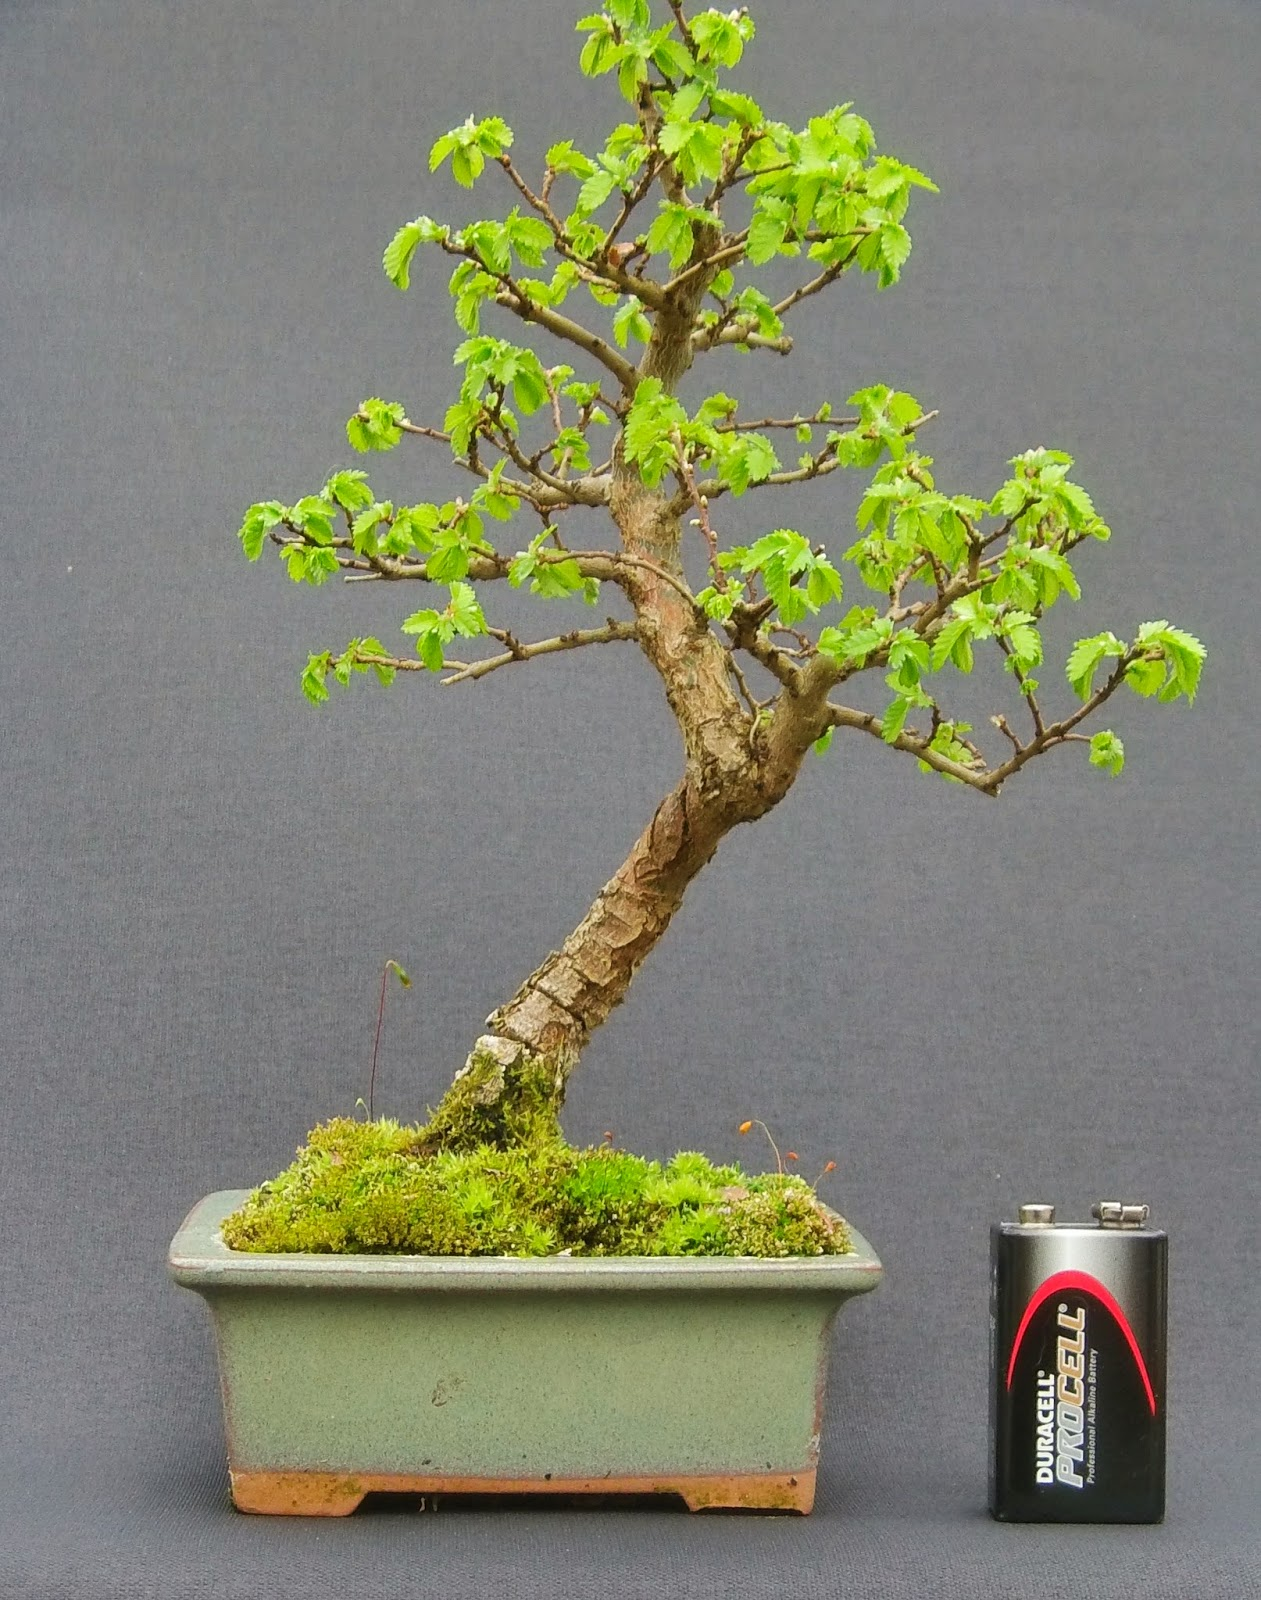 MiKo Bonsai